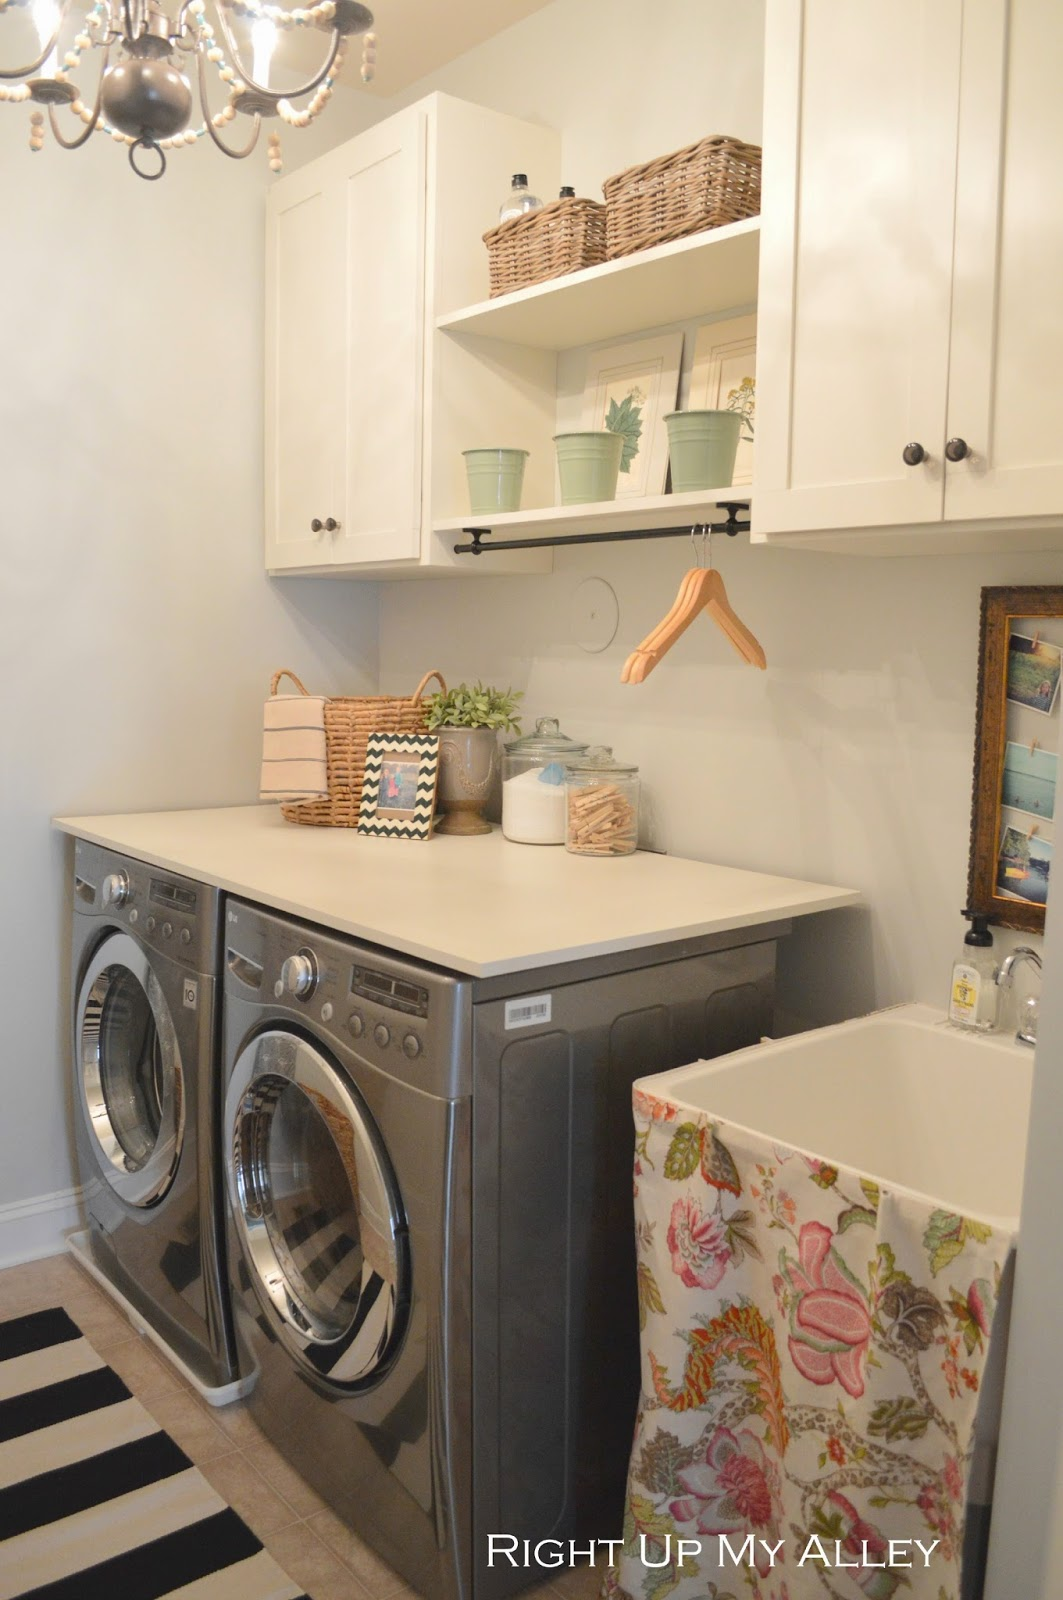 Right up my alley: ORC Laundry Room Reveal